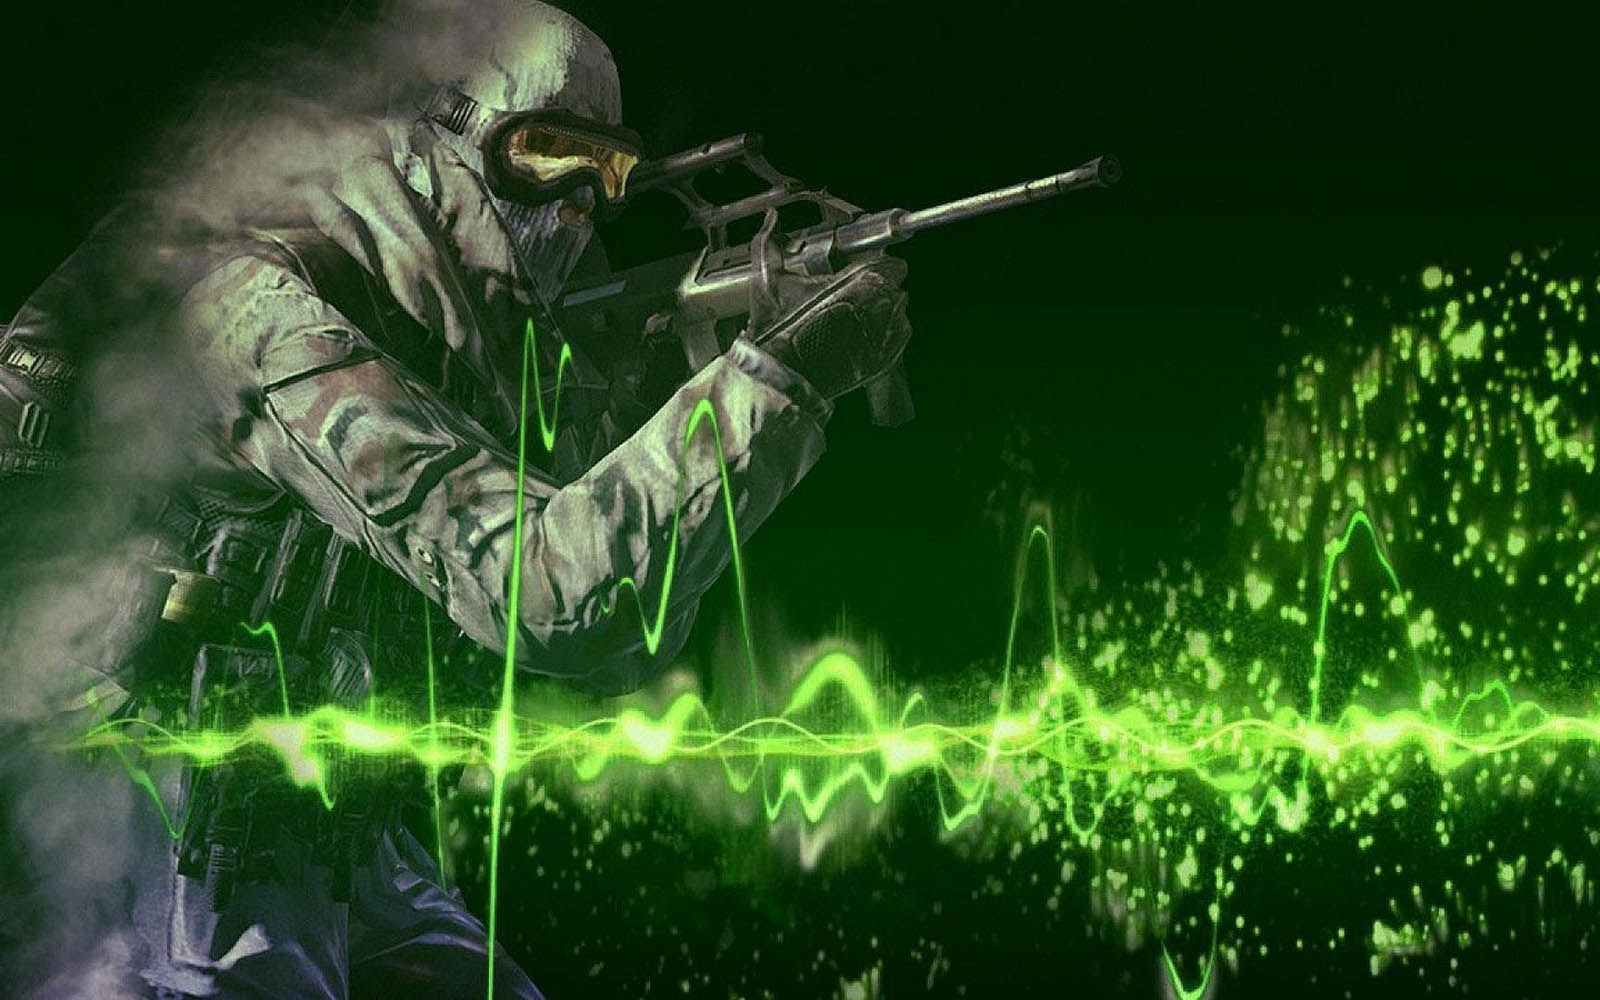 Free download wallpapers Call Of Duty Modern Warfare 3